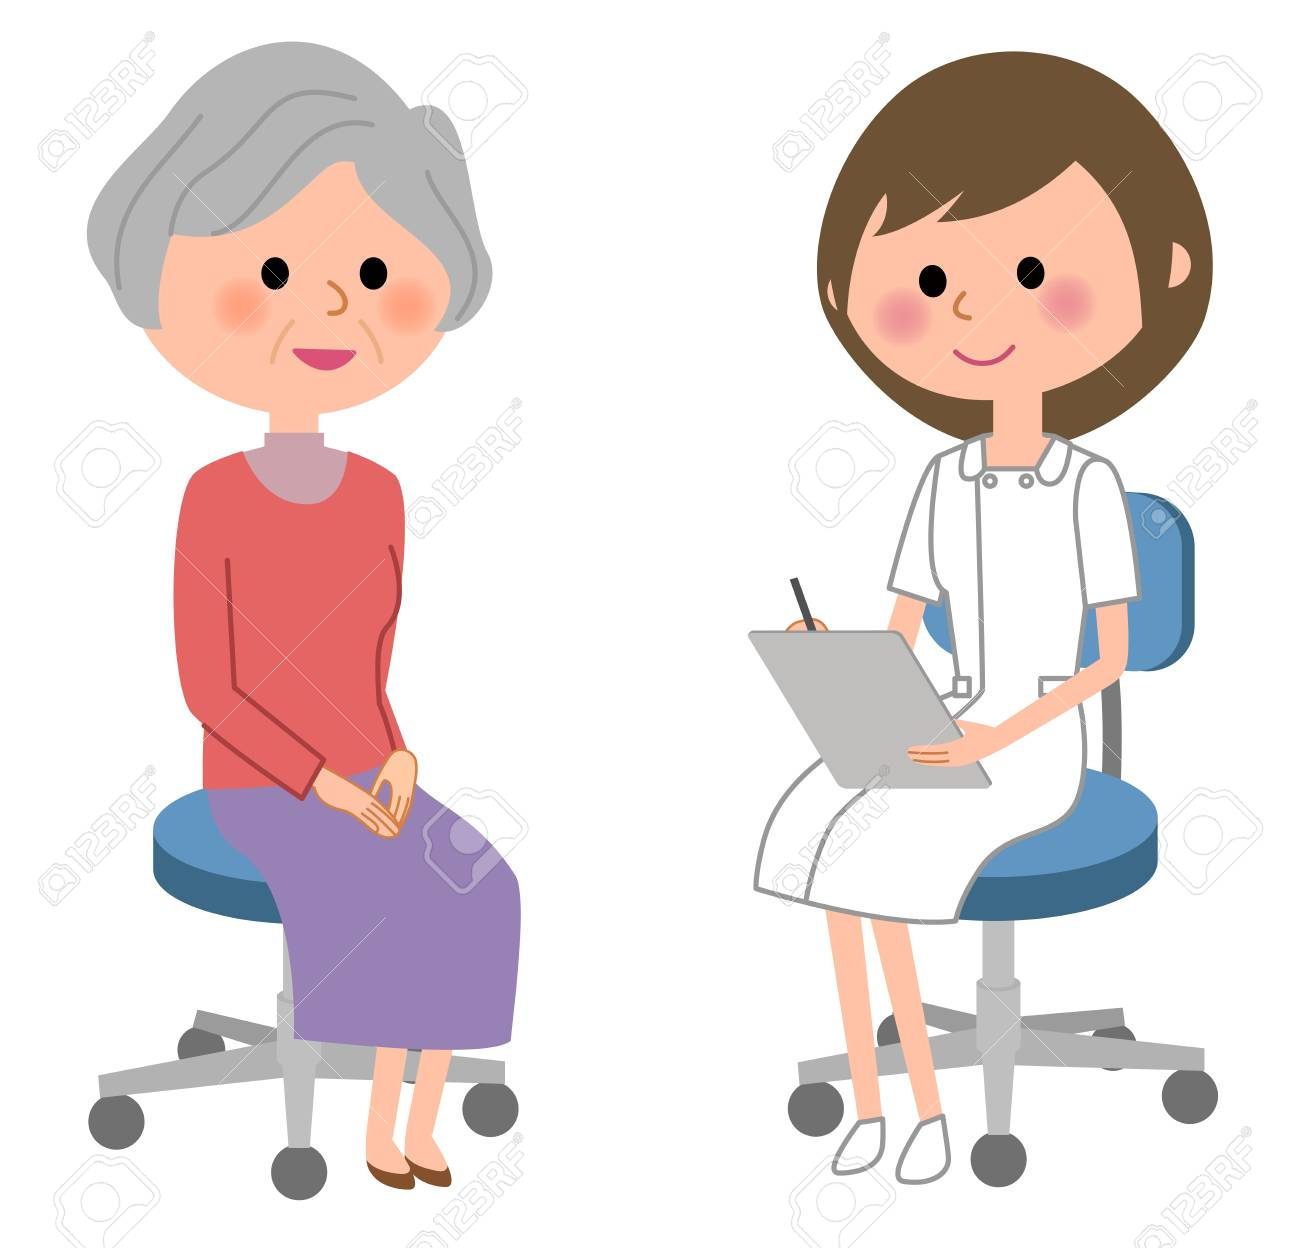 Nurse consult a patient on white background, vector illustration. - 88620442